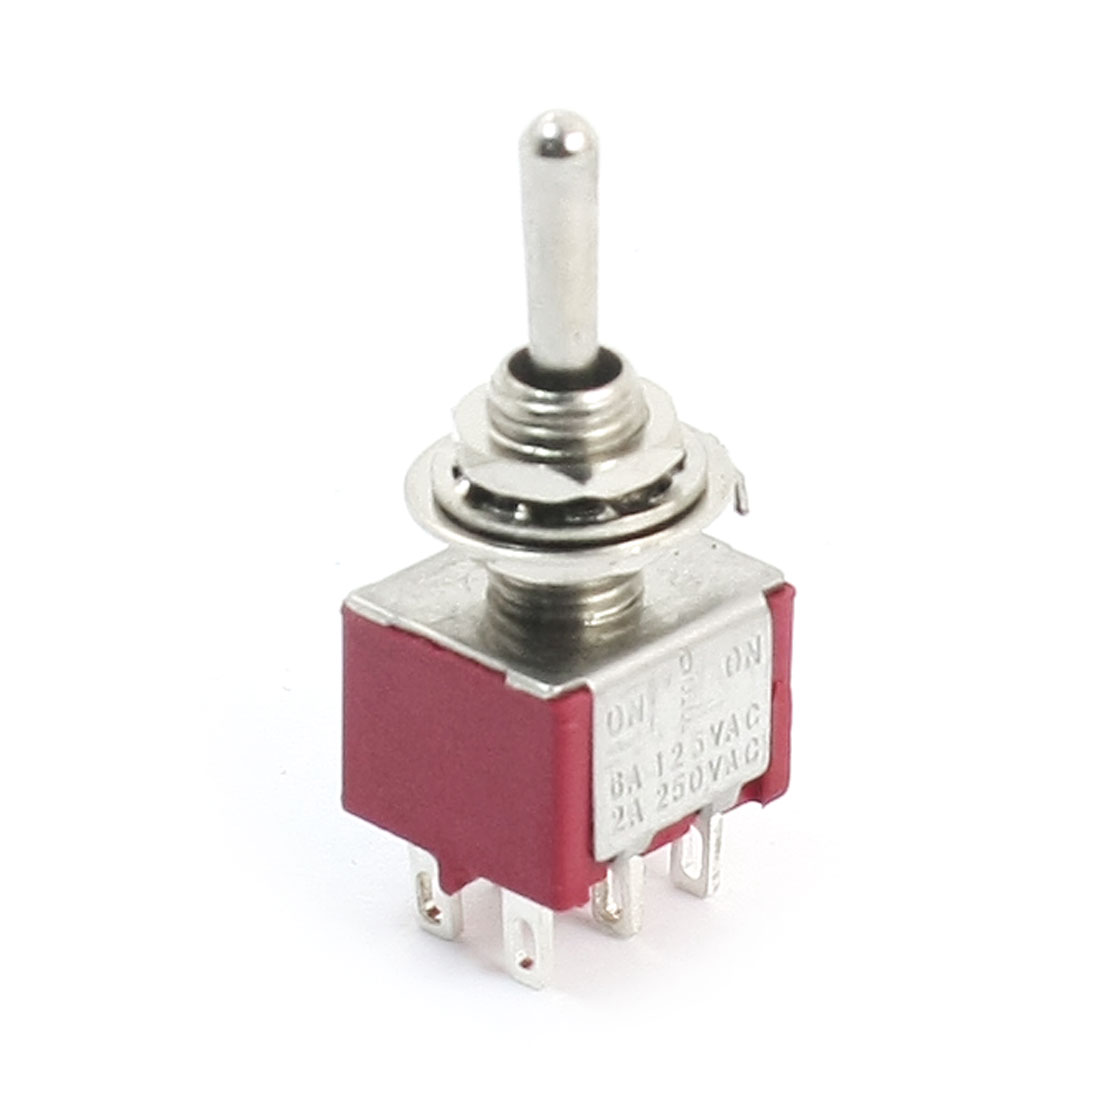 AC 250V 2A AC 125V 5A 2P2T 3 Positions ON/OFF/ON Toggle Switch